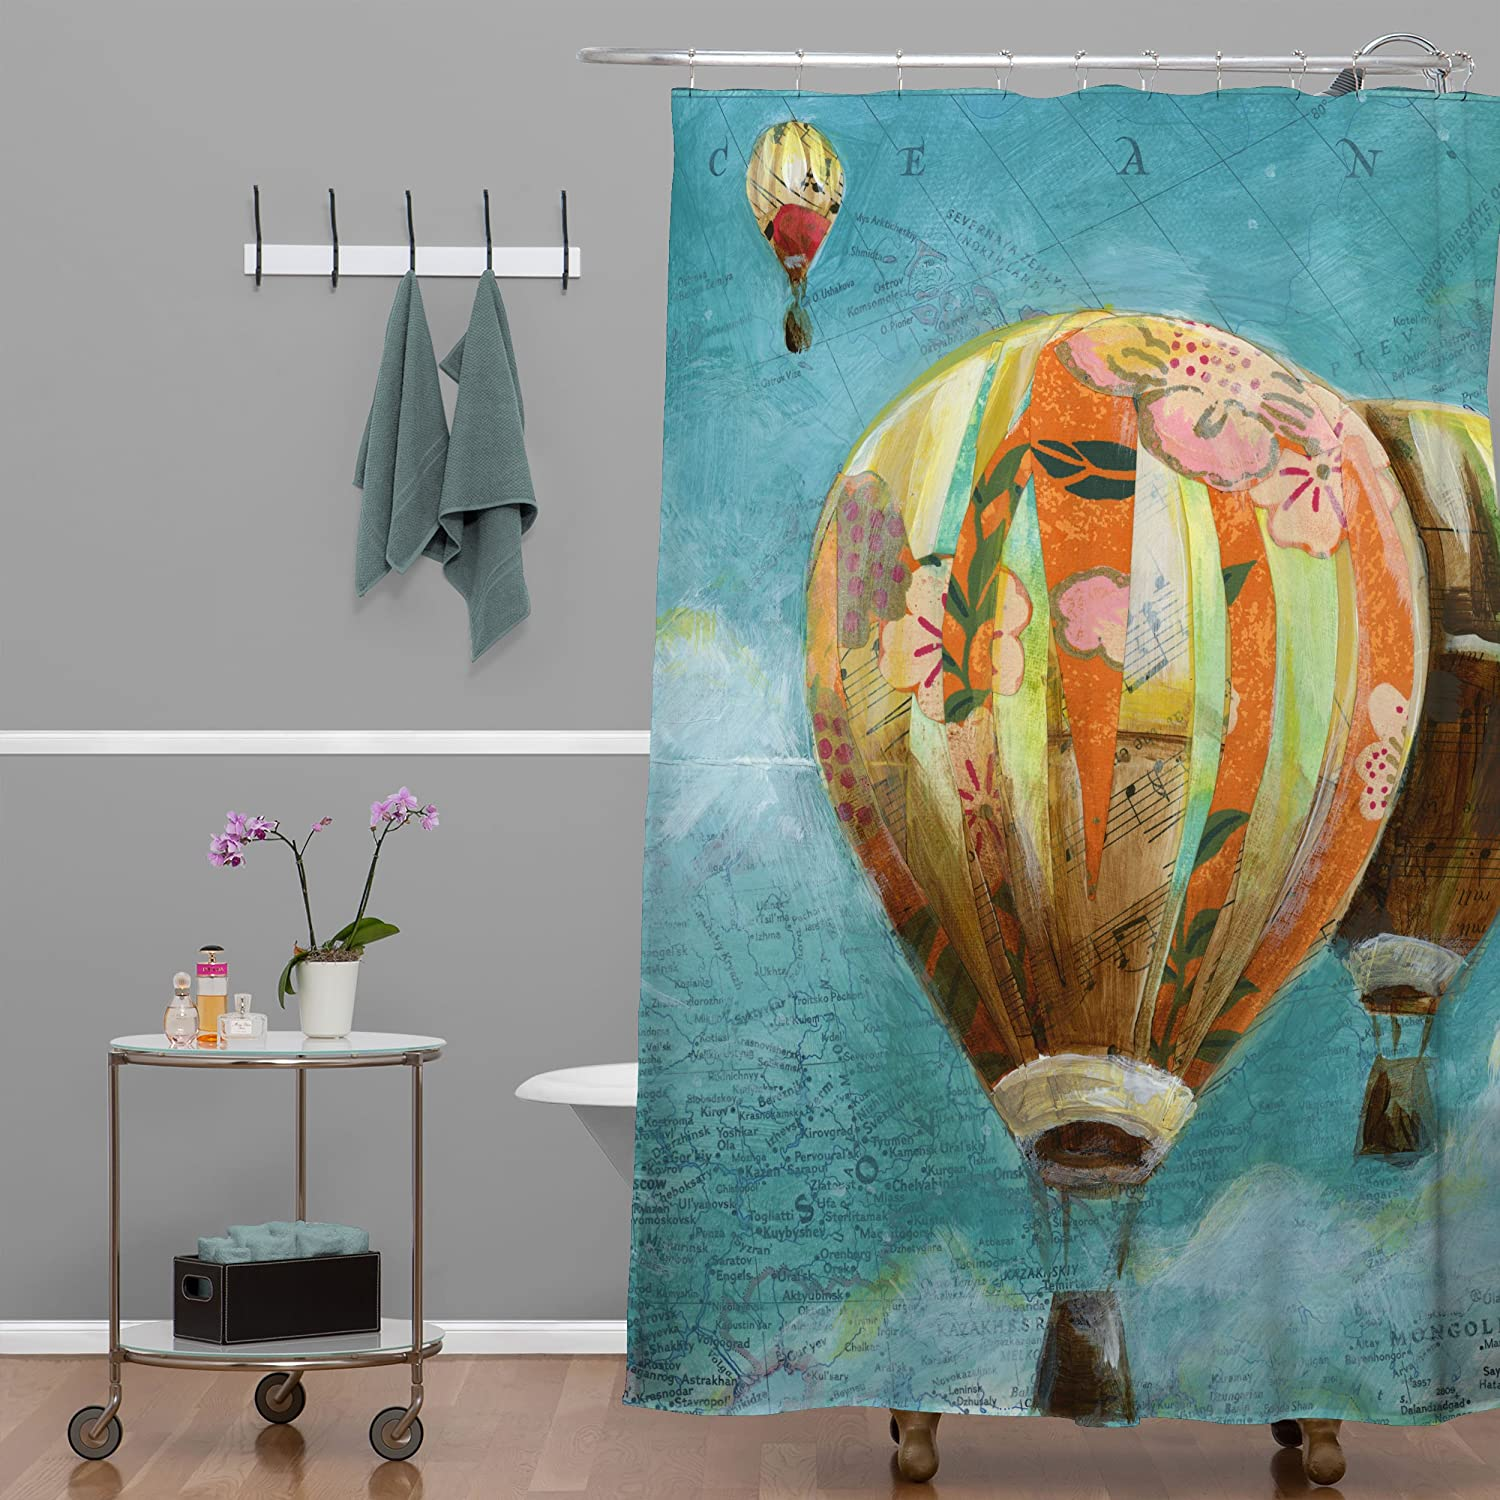 Deny Designs Land Of Lulu Herd Of Balloons 1 Shower Curtain 69 x 72